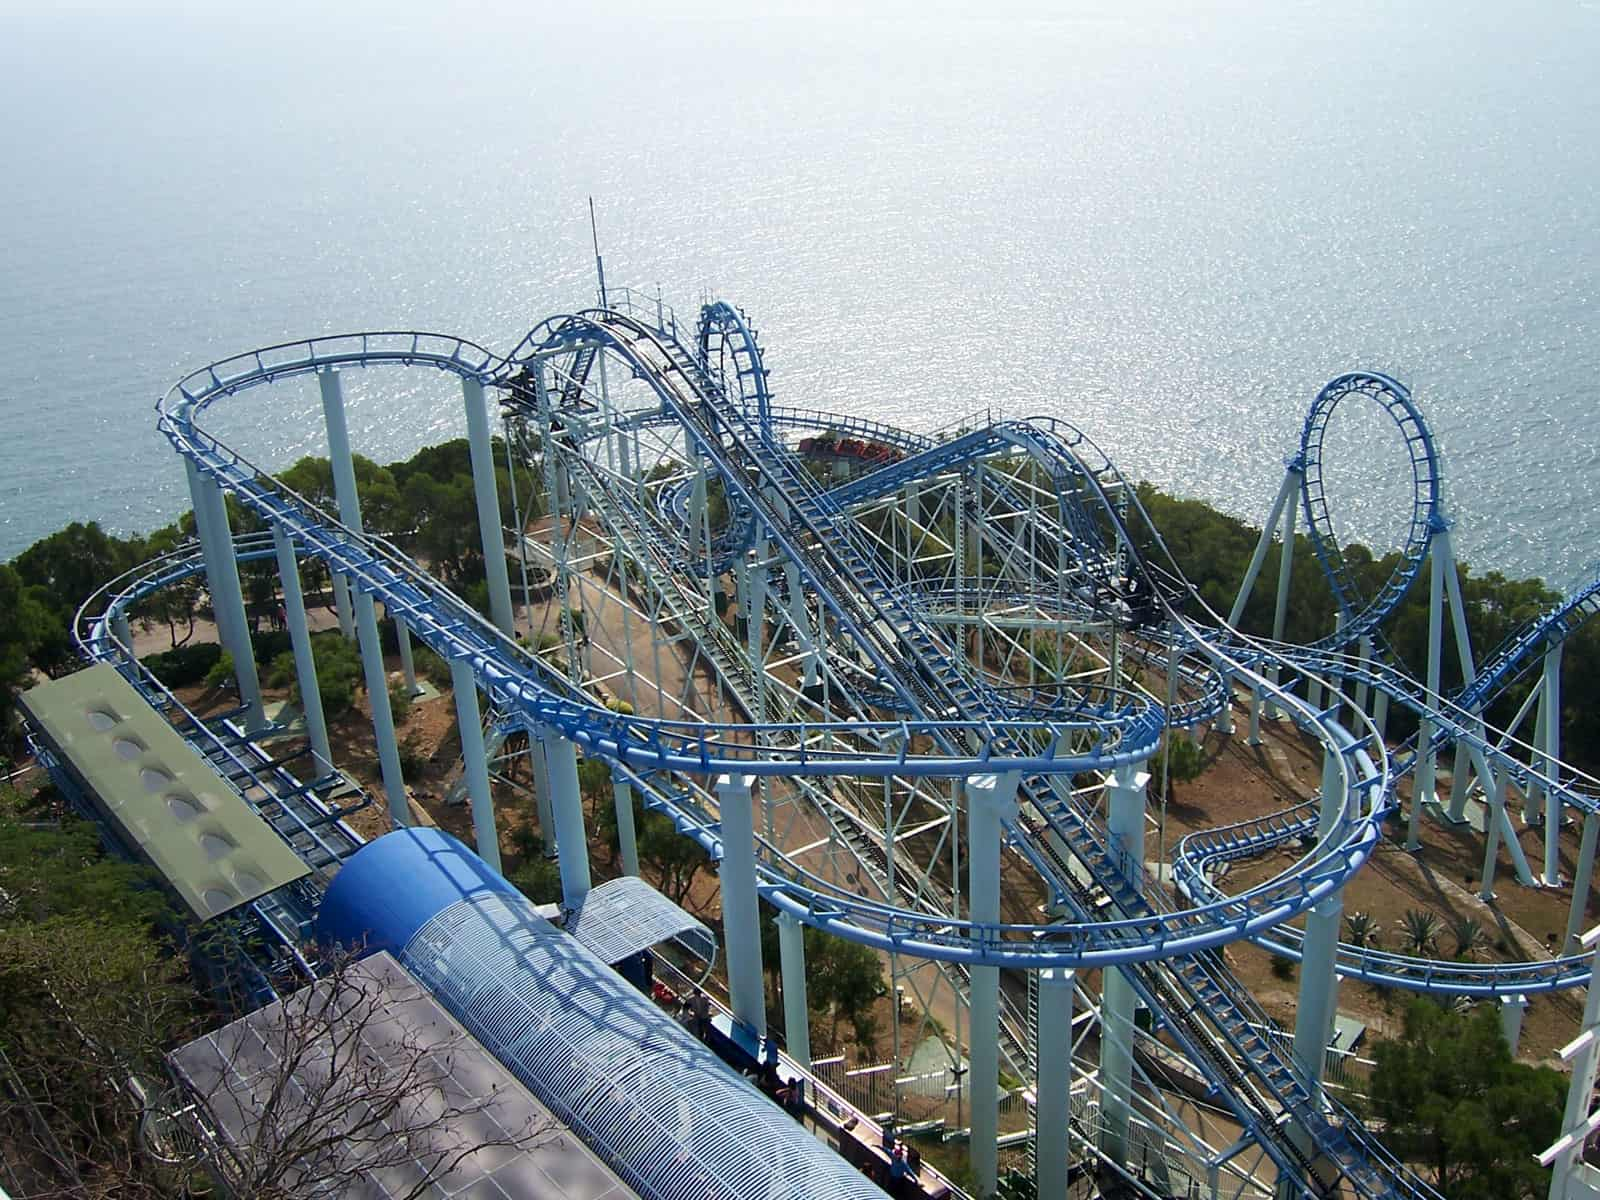 Ocean Park - Hong Kong - Best Amusement Parks in the World